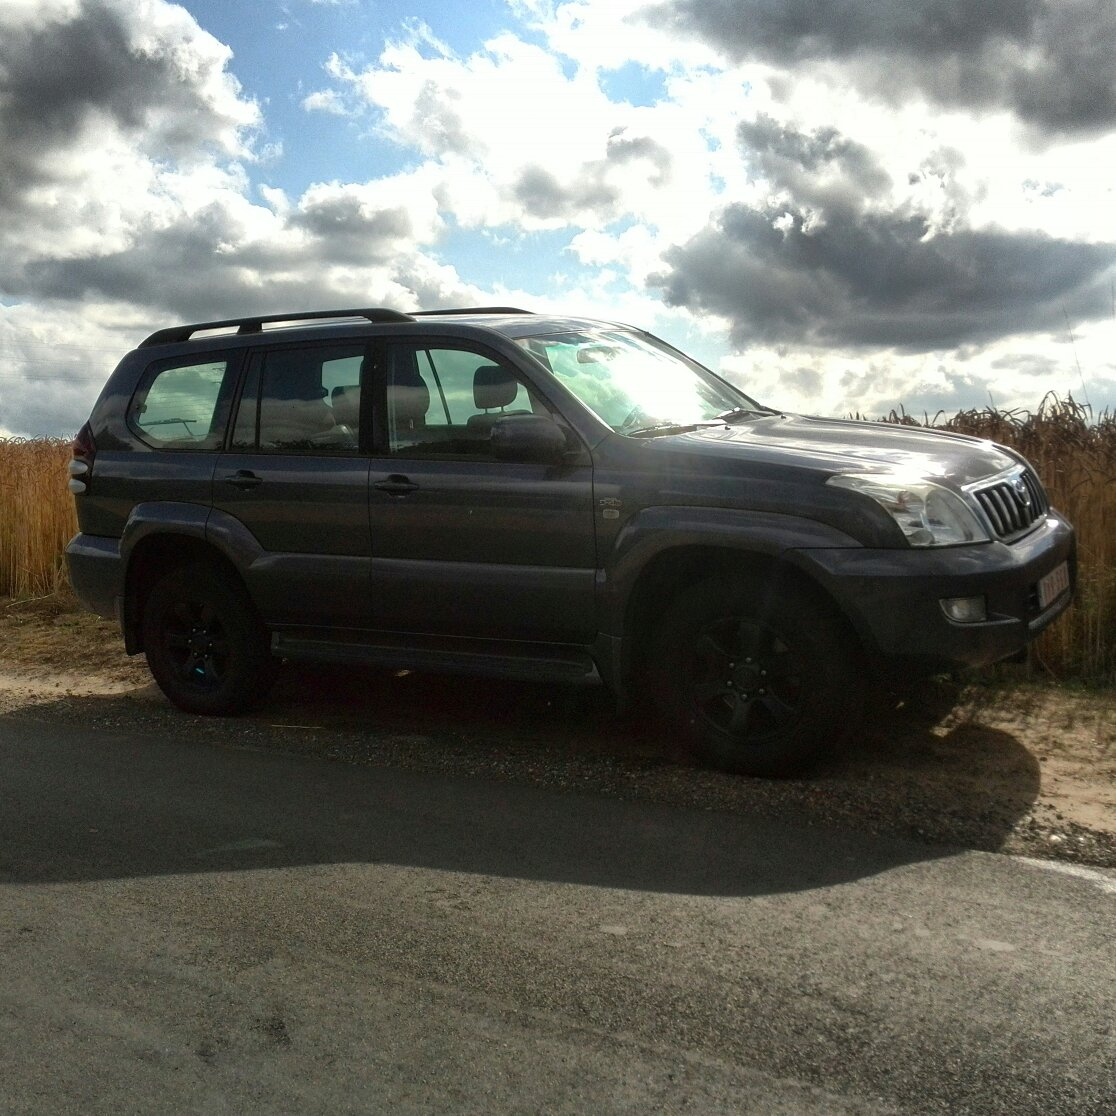 I Want To Build A Roof Rack For This Toyota Land Cruiser 120 Any Ideas For The Design